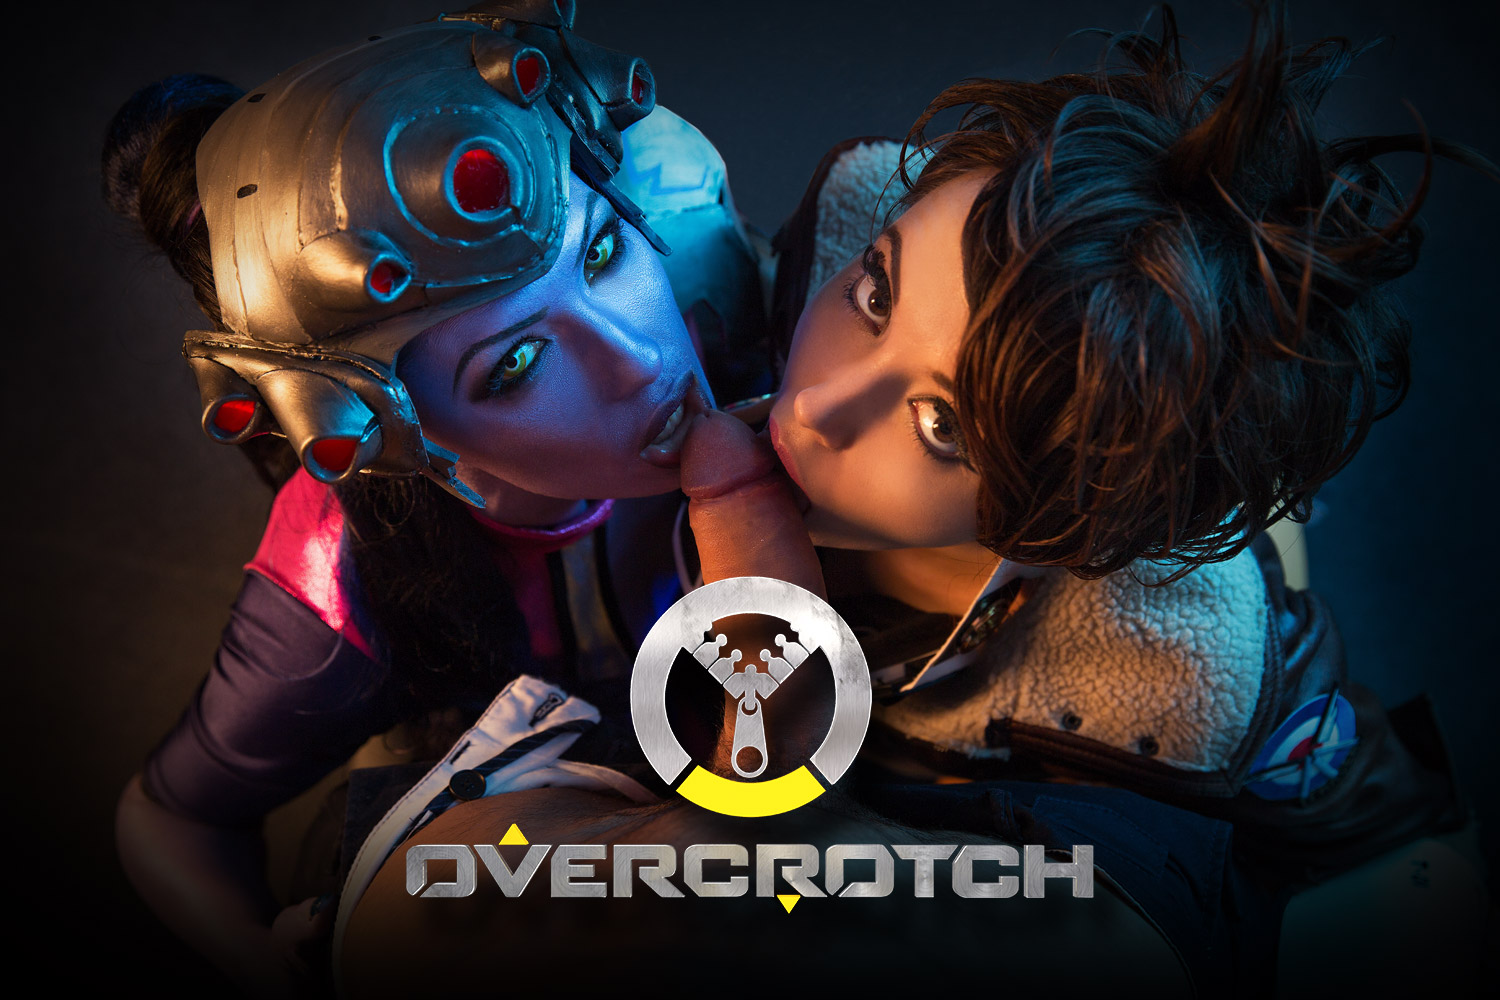 Overwatch Virtual Reality Porn Cosplay starring Widowmaker and Tracer